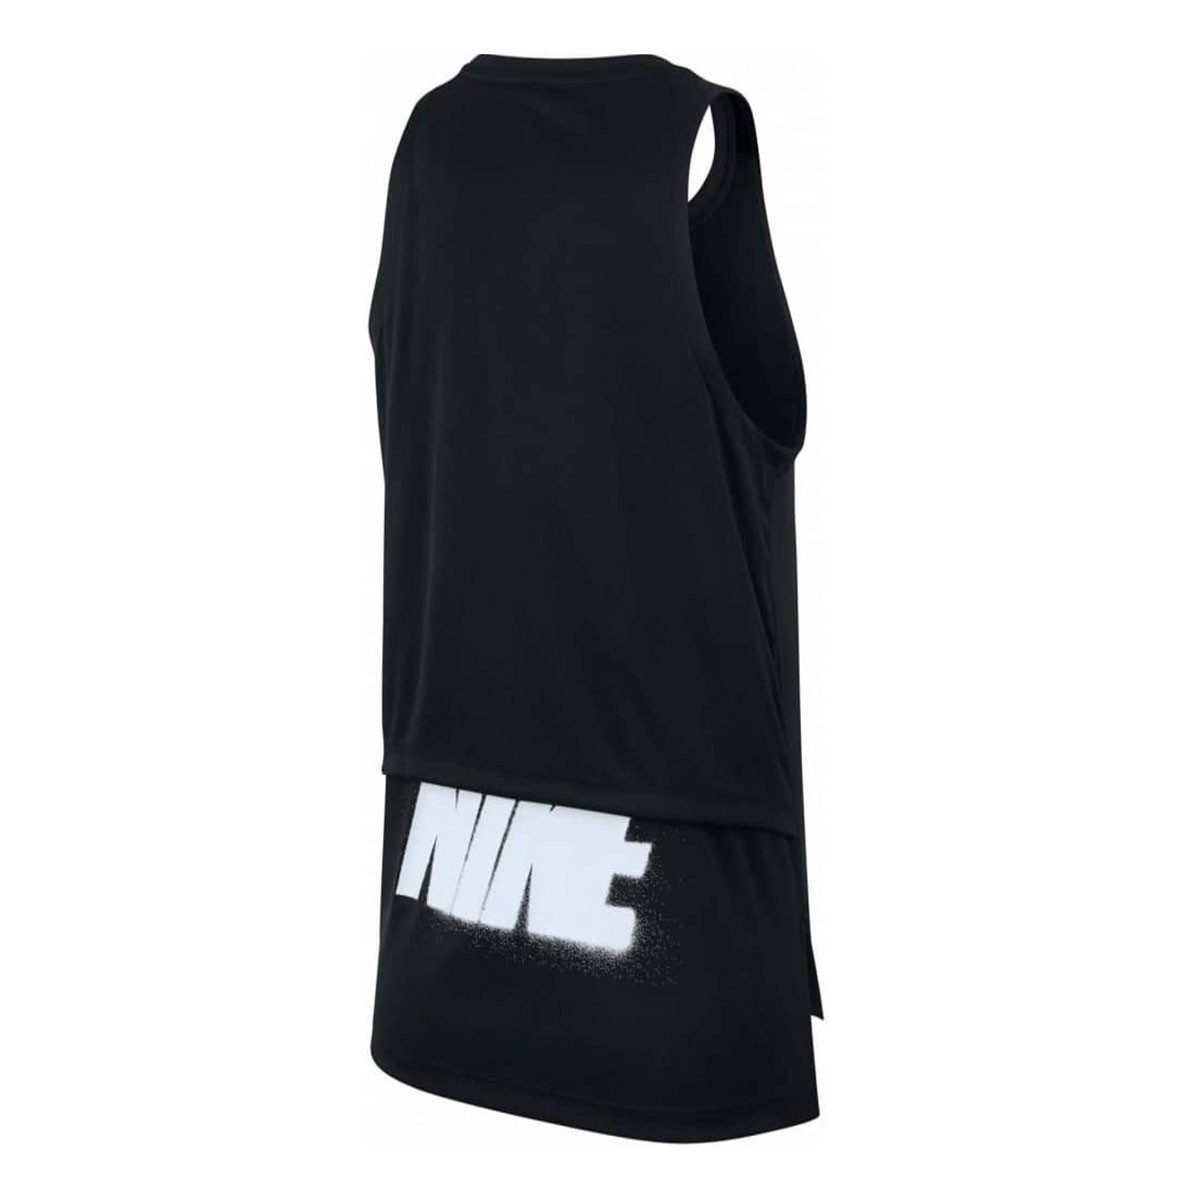 Top Nike Longo Tank Rebel GX Preto